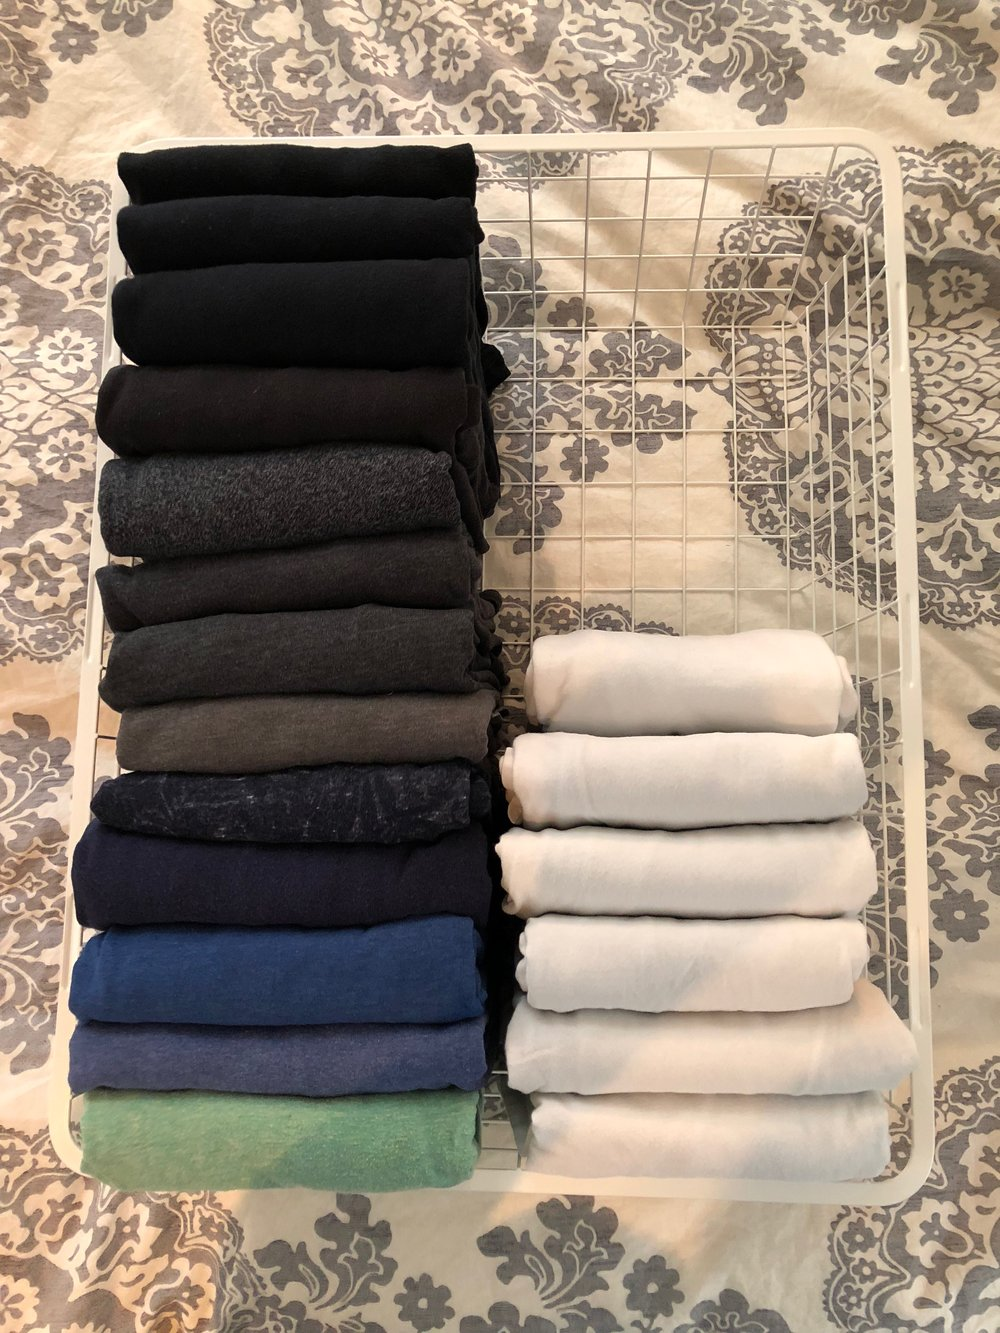 Organizing your clothes by color makes it easier to find a particular article of clothing.